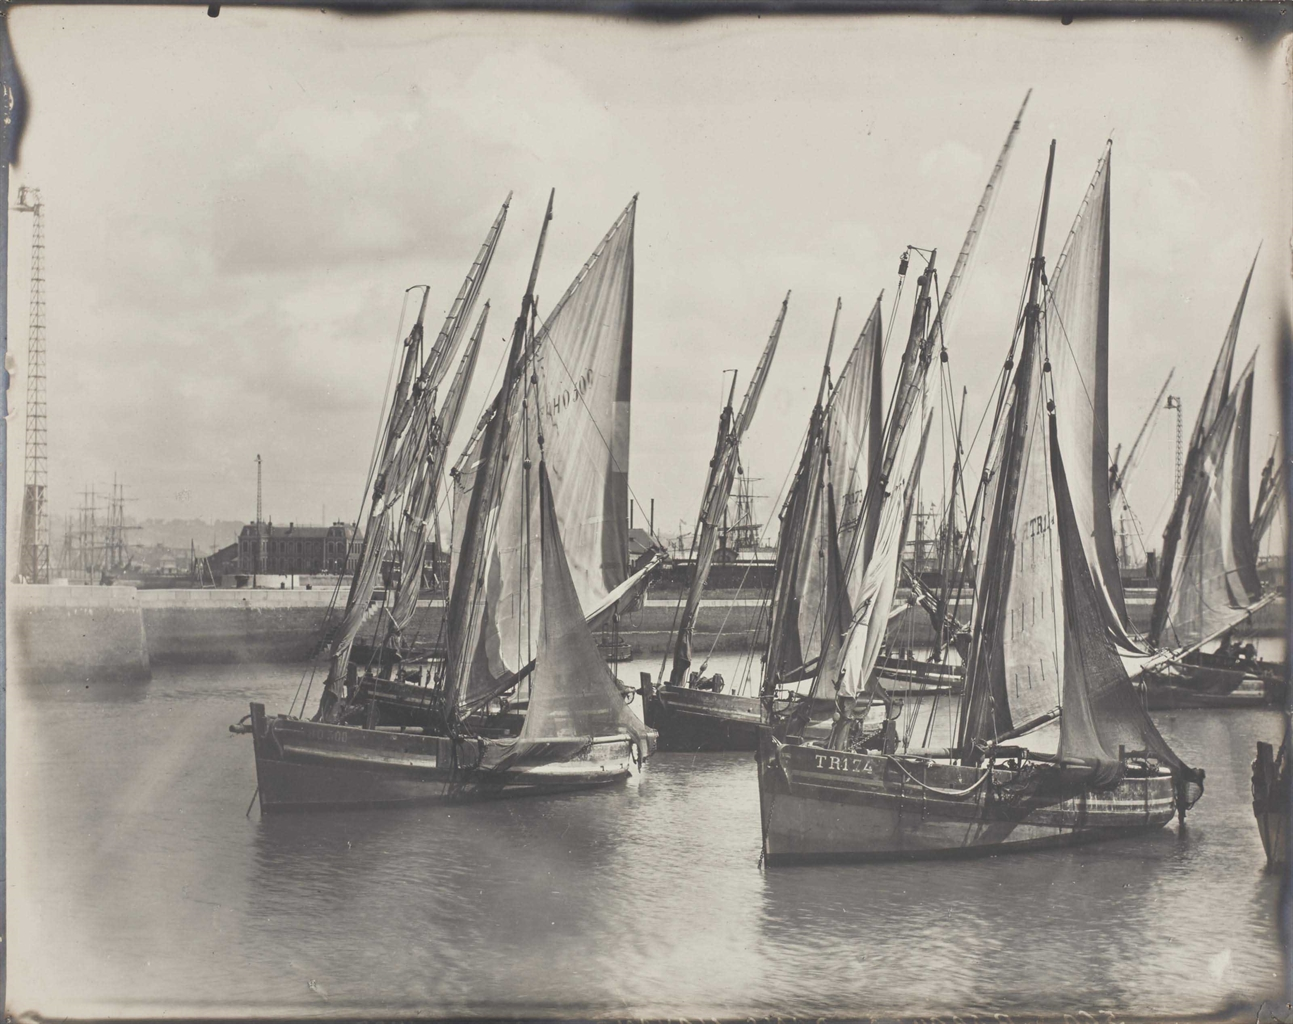 Photographer Unknown - Vues de voiliers, Le Havre-1910